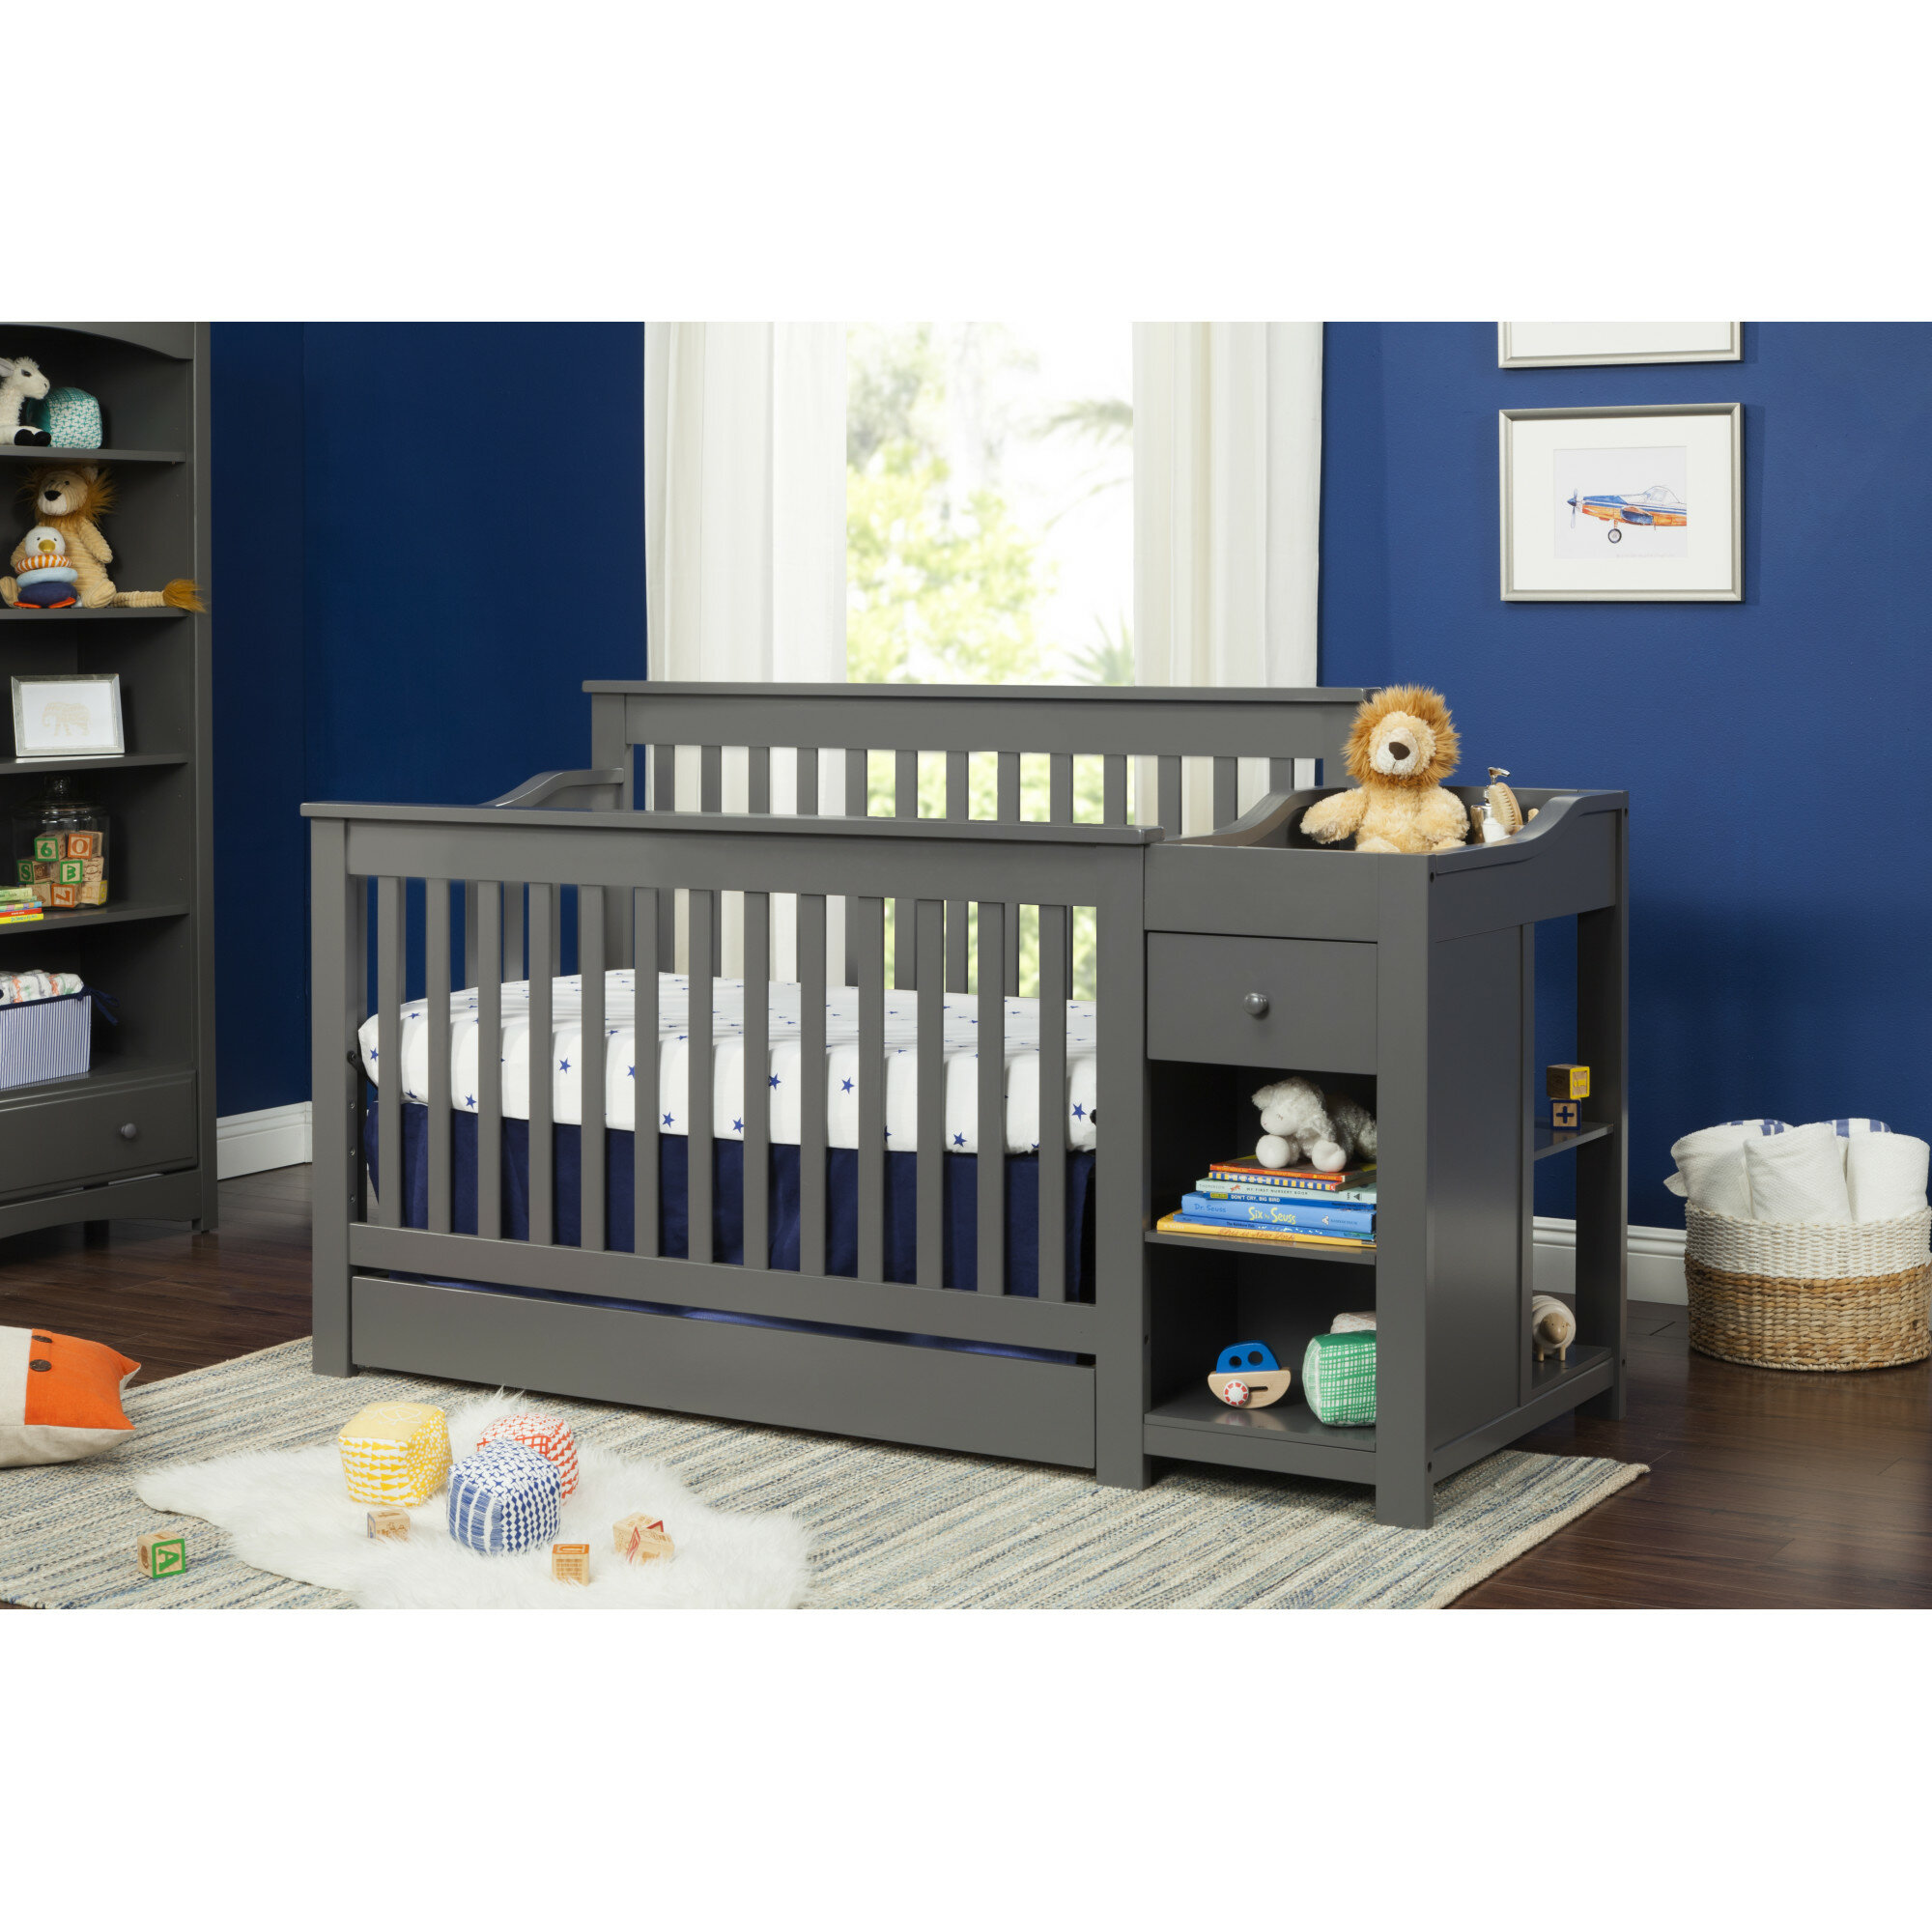 l side and for changer shop baby imagio changing crib the in fixed montville best cribs deals oct combo